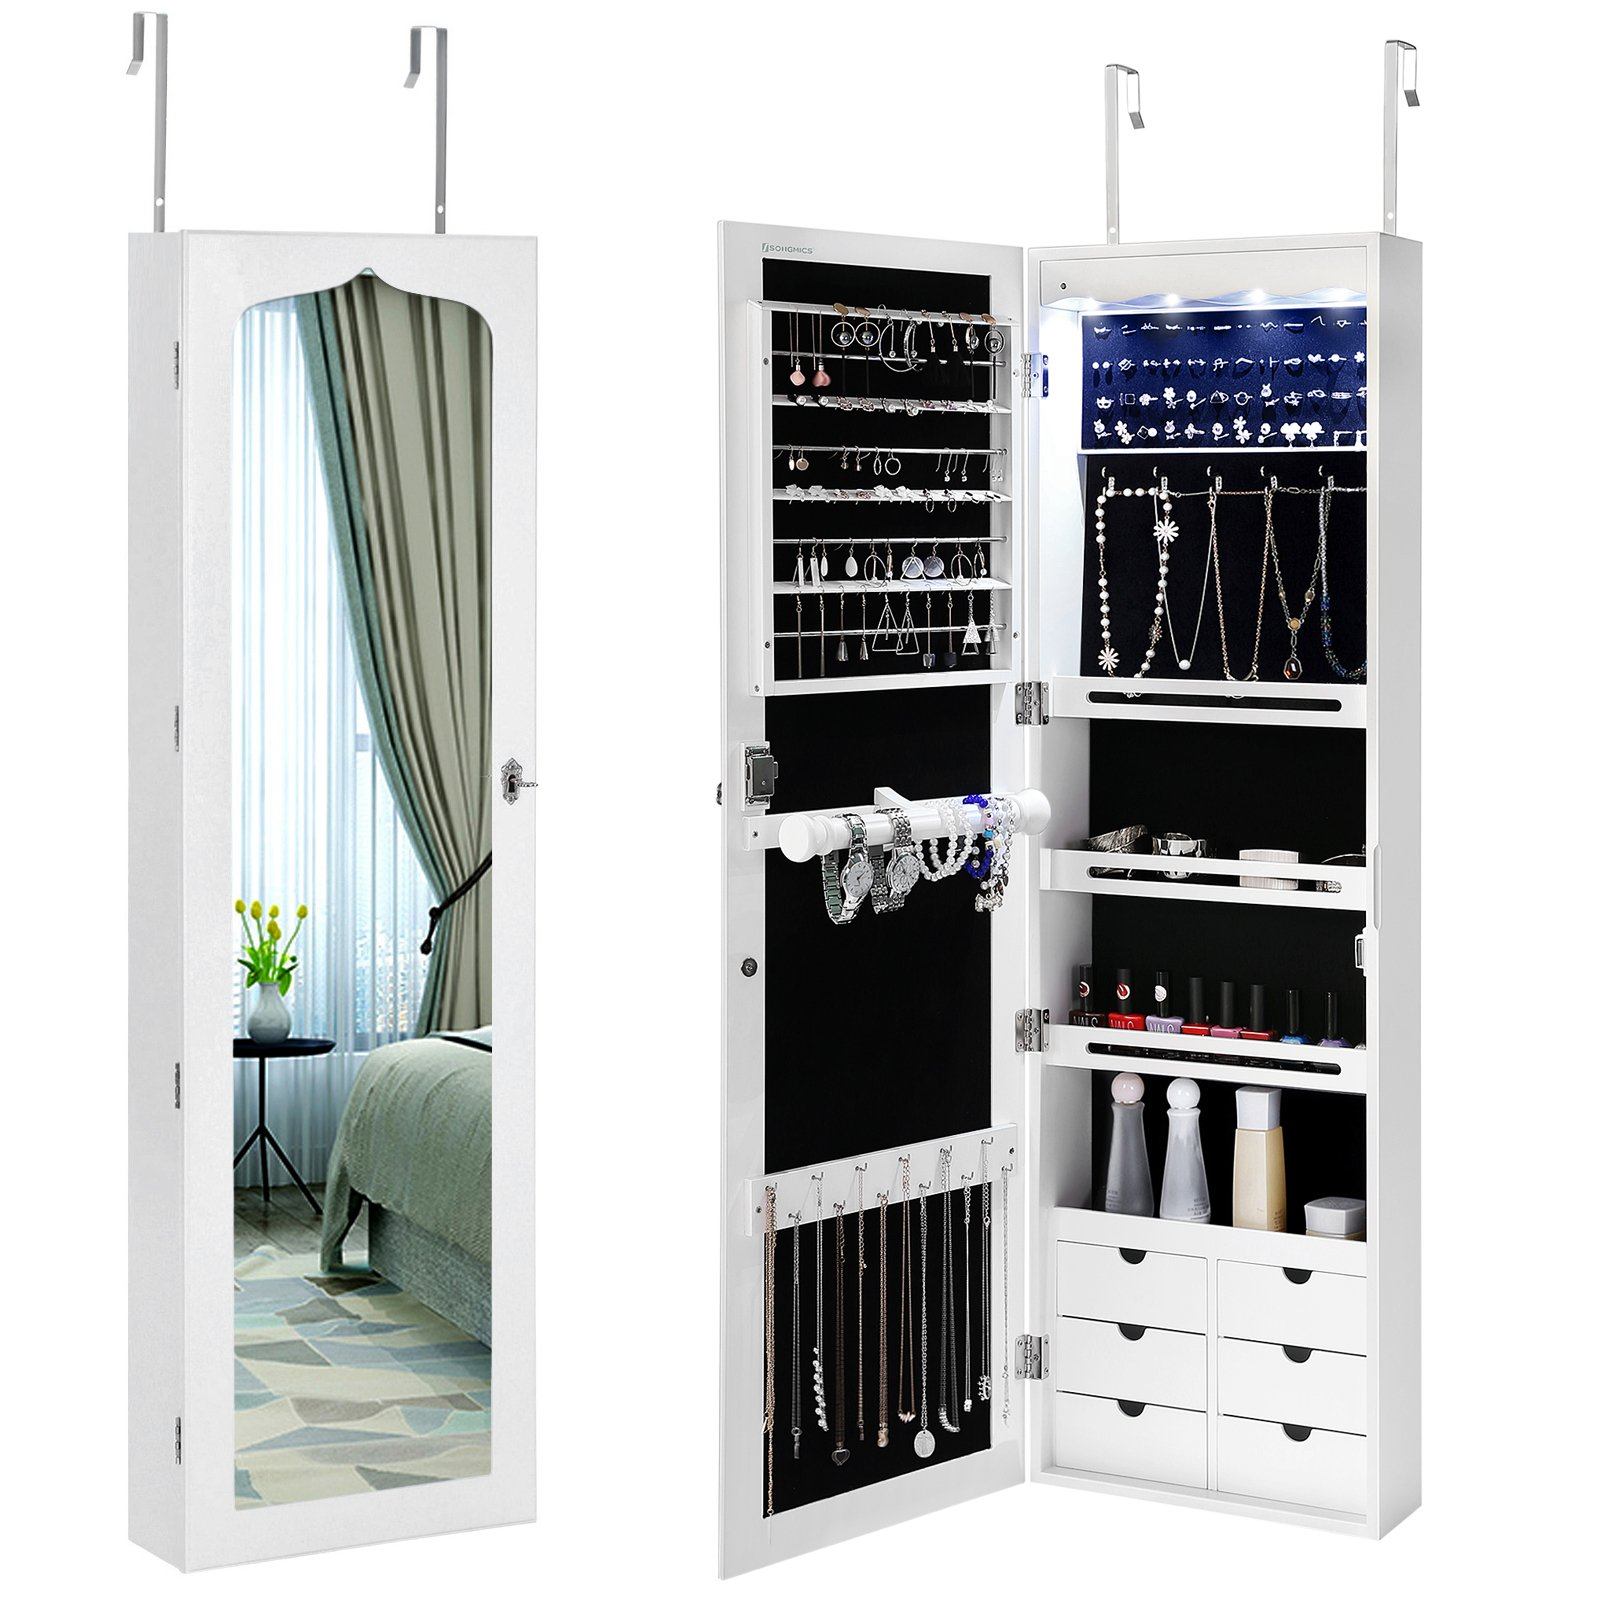 SONGMICS LED Jewelry Cabinet Armoire 6 Drawers Lockable Door Mounted Jewelry Organizer with White UJJC88W by SONGMICS